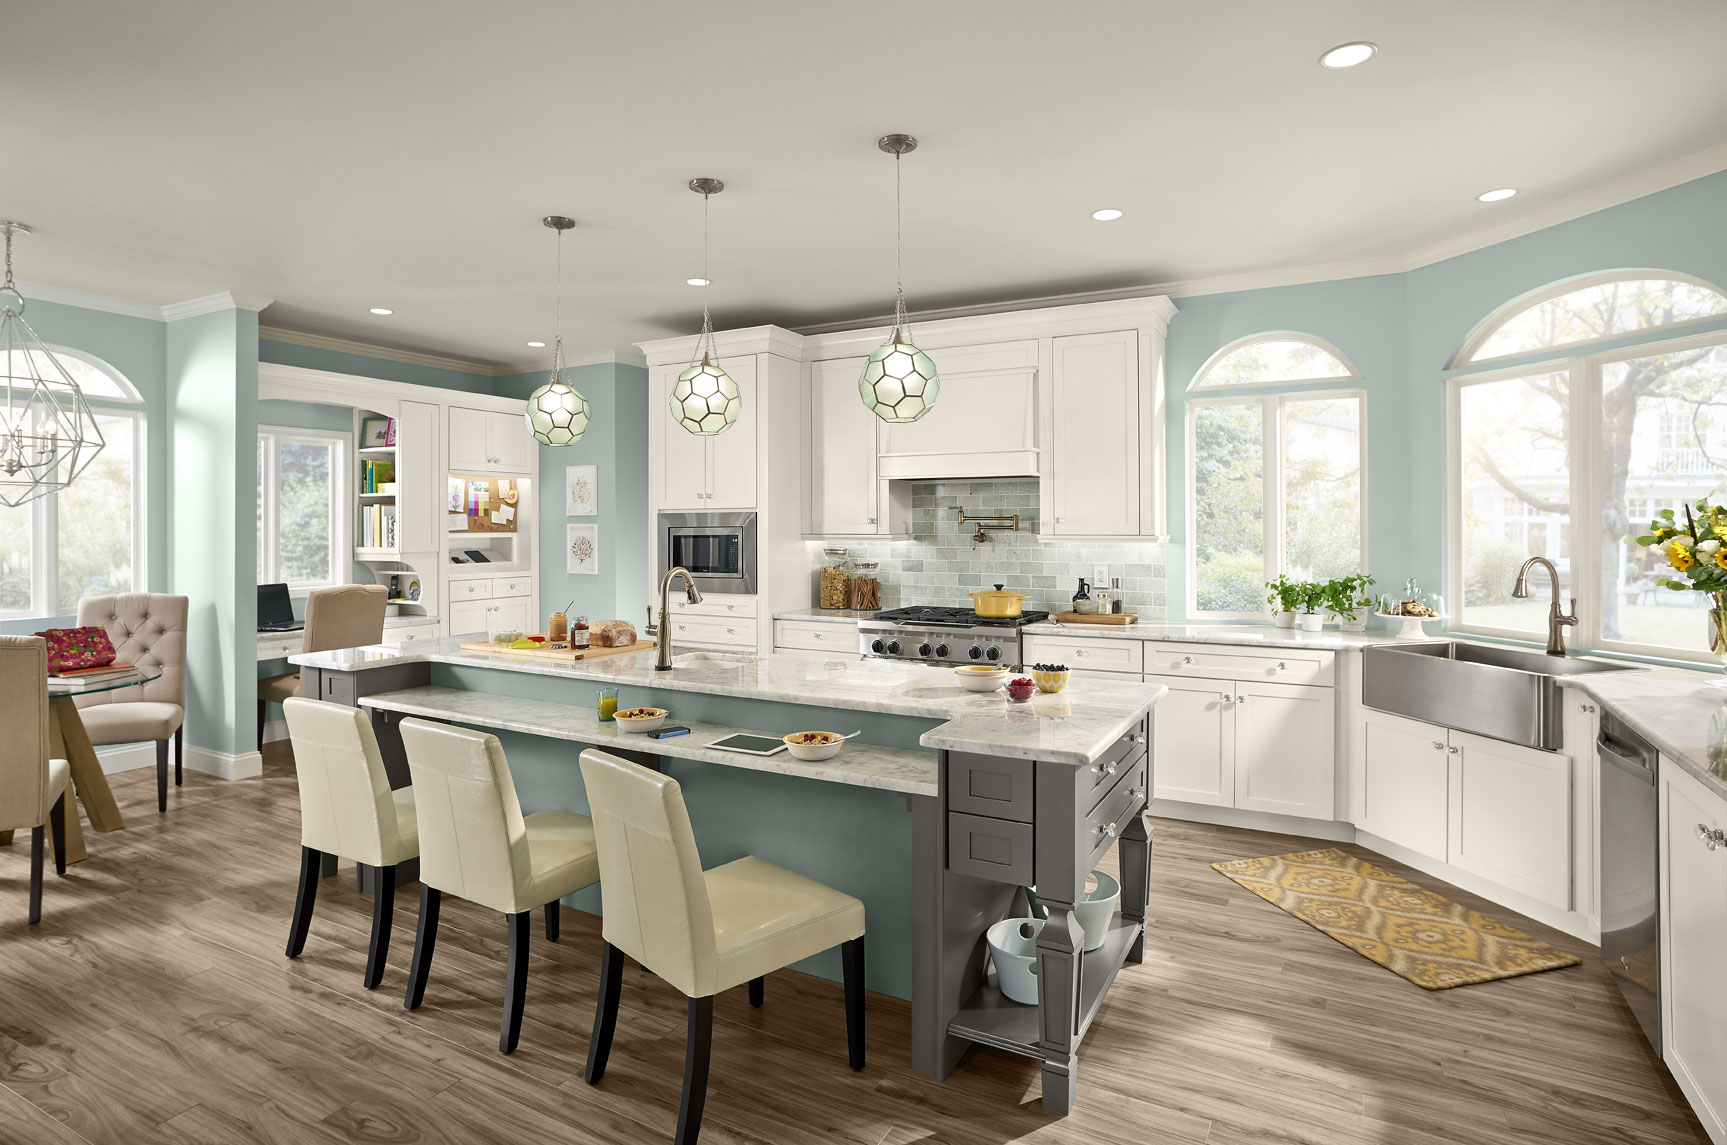 cabinets countertops flooring naples marco island kraftmaid kitchen cabinet prices best price kraftmaid naples marco island